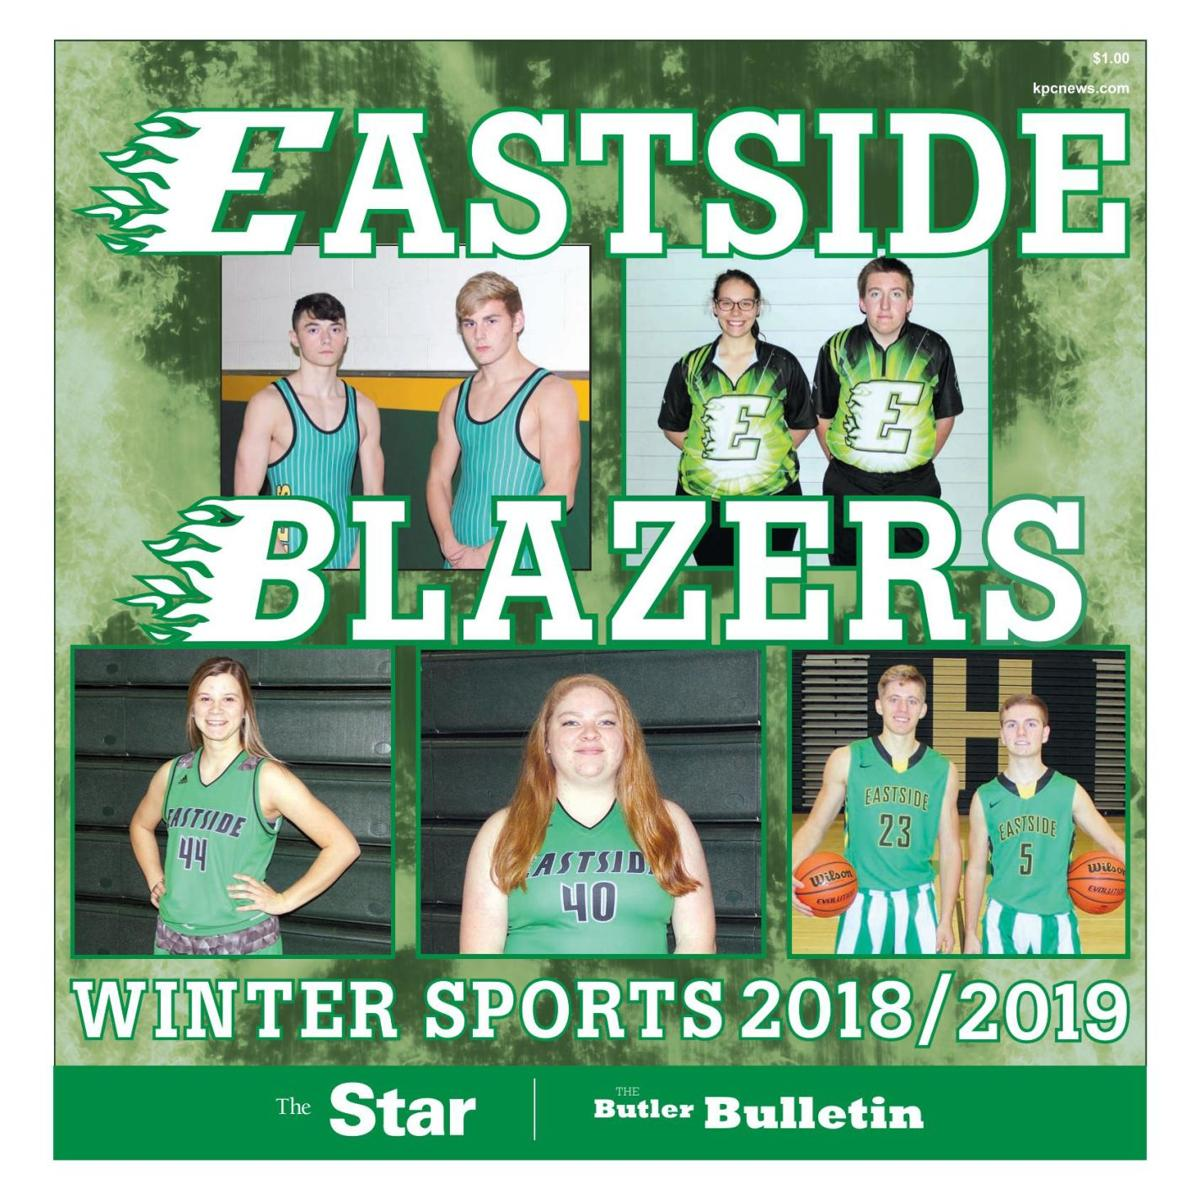 Eastside Blazers Winter Sports 2018/2019